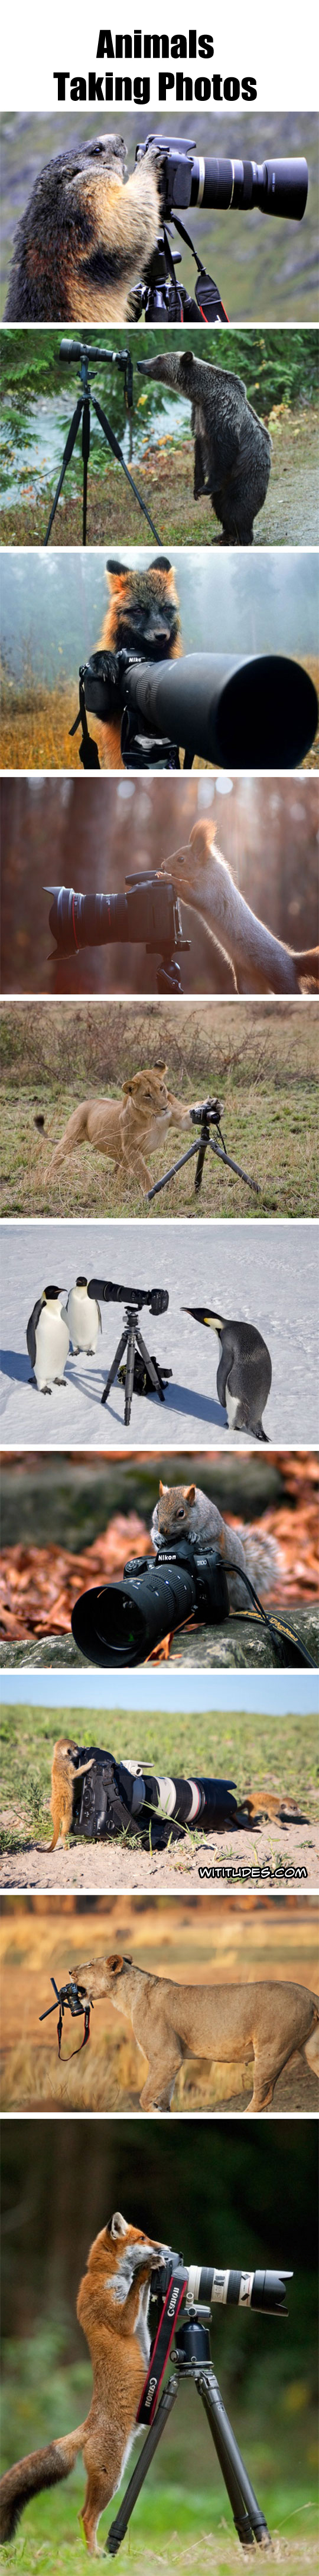 Animals Taking Photos